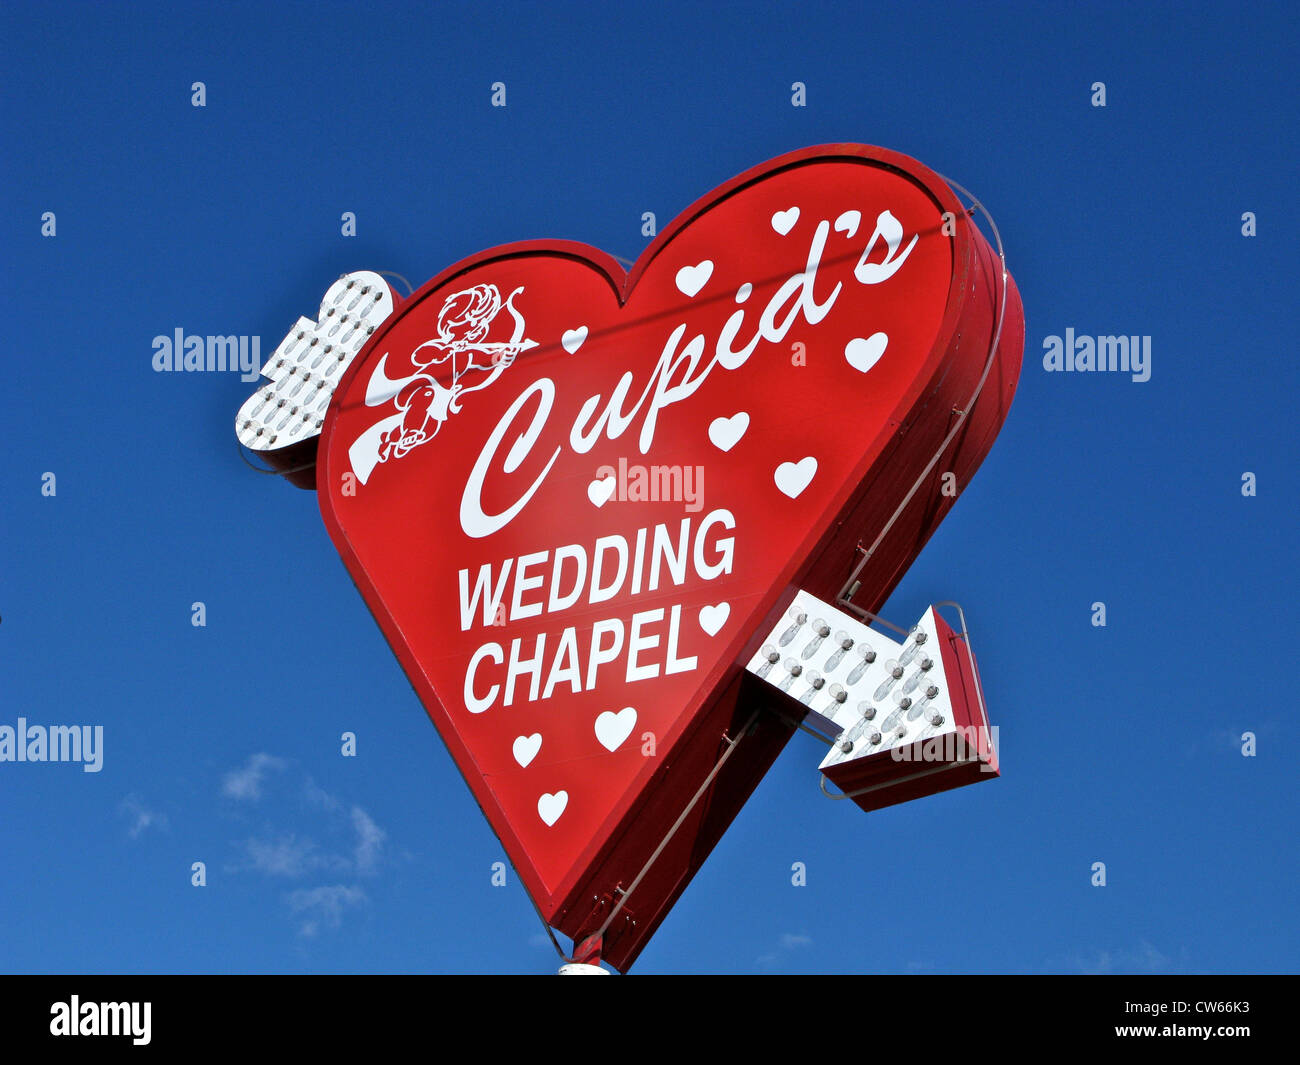 Red Heart Shape Sign With Neon Arrow For Cupids Wedding Chapel In Las Vegas Nevada USA